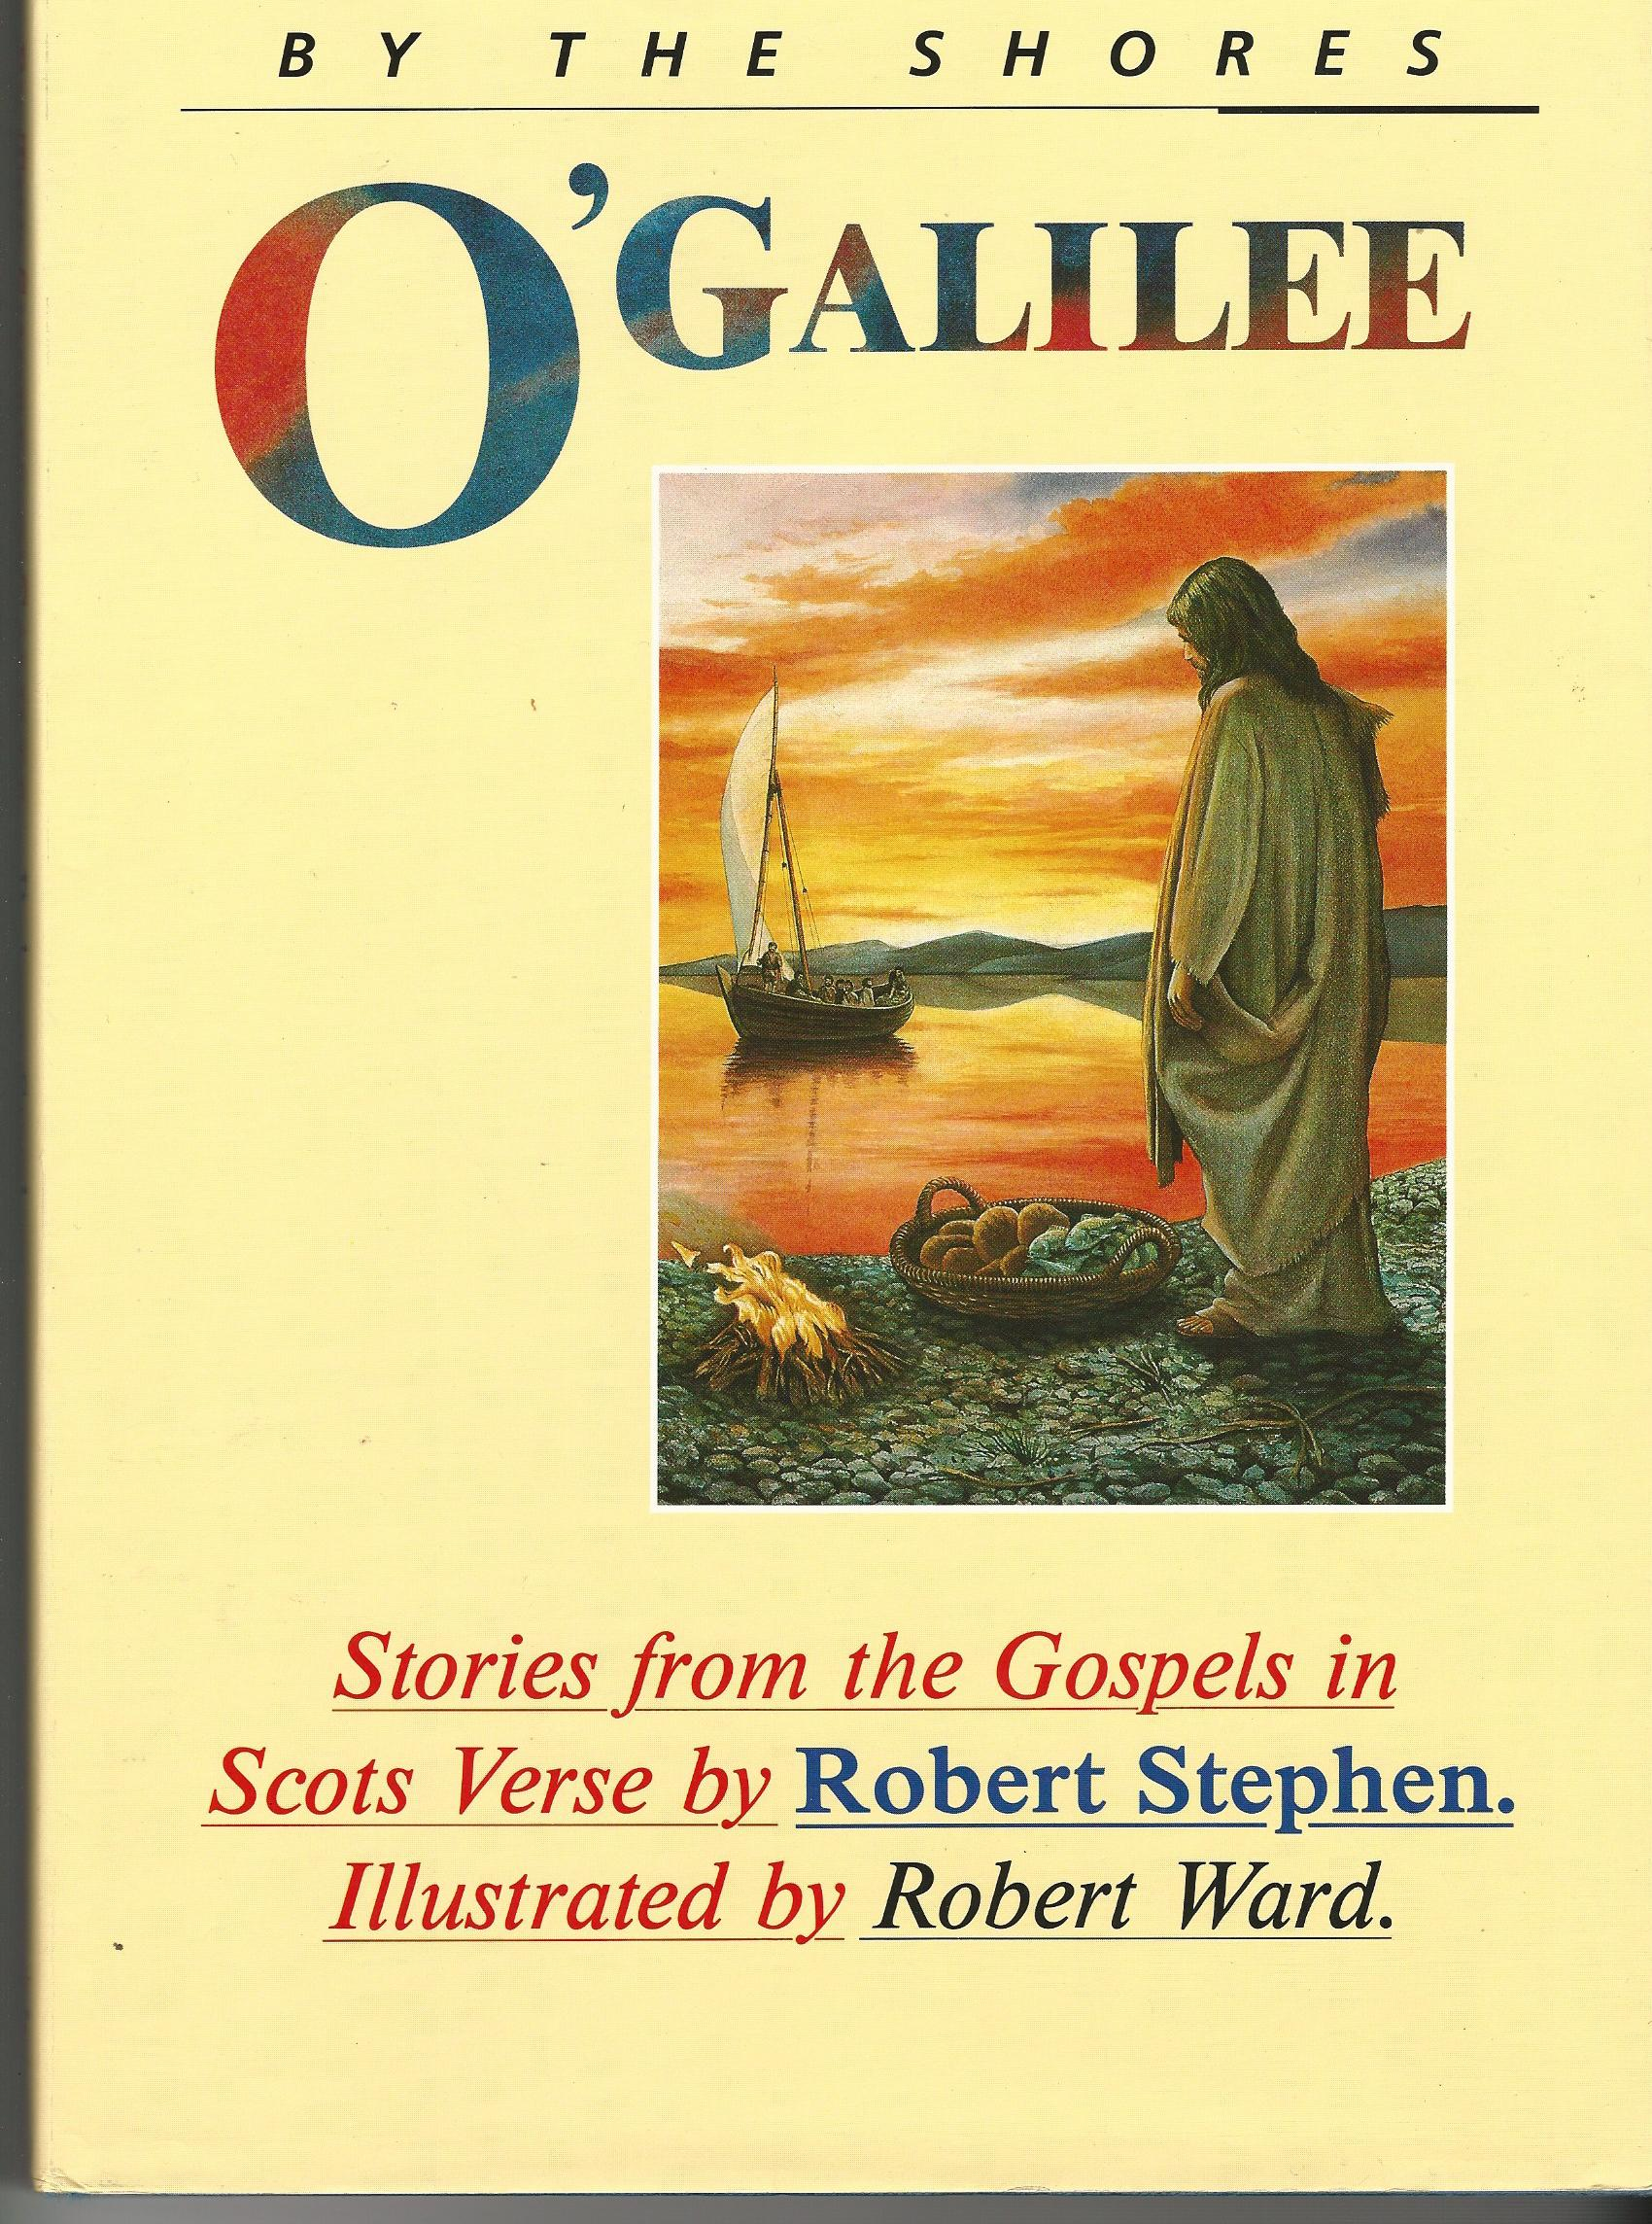 Image for By the Shores O'Galilee: Stories from the Gospels in Scots Verse.